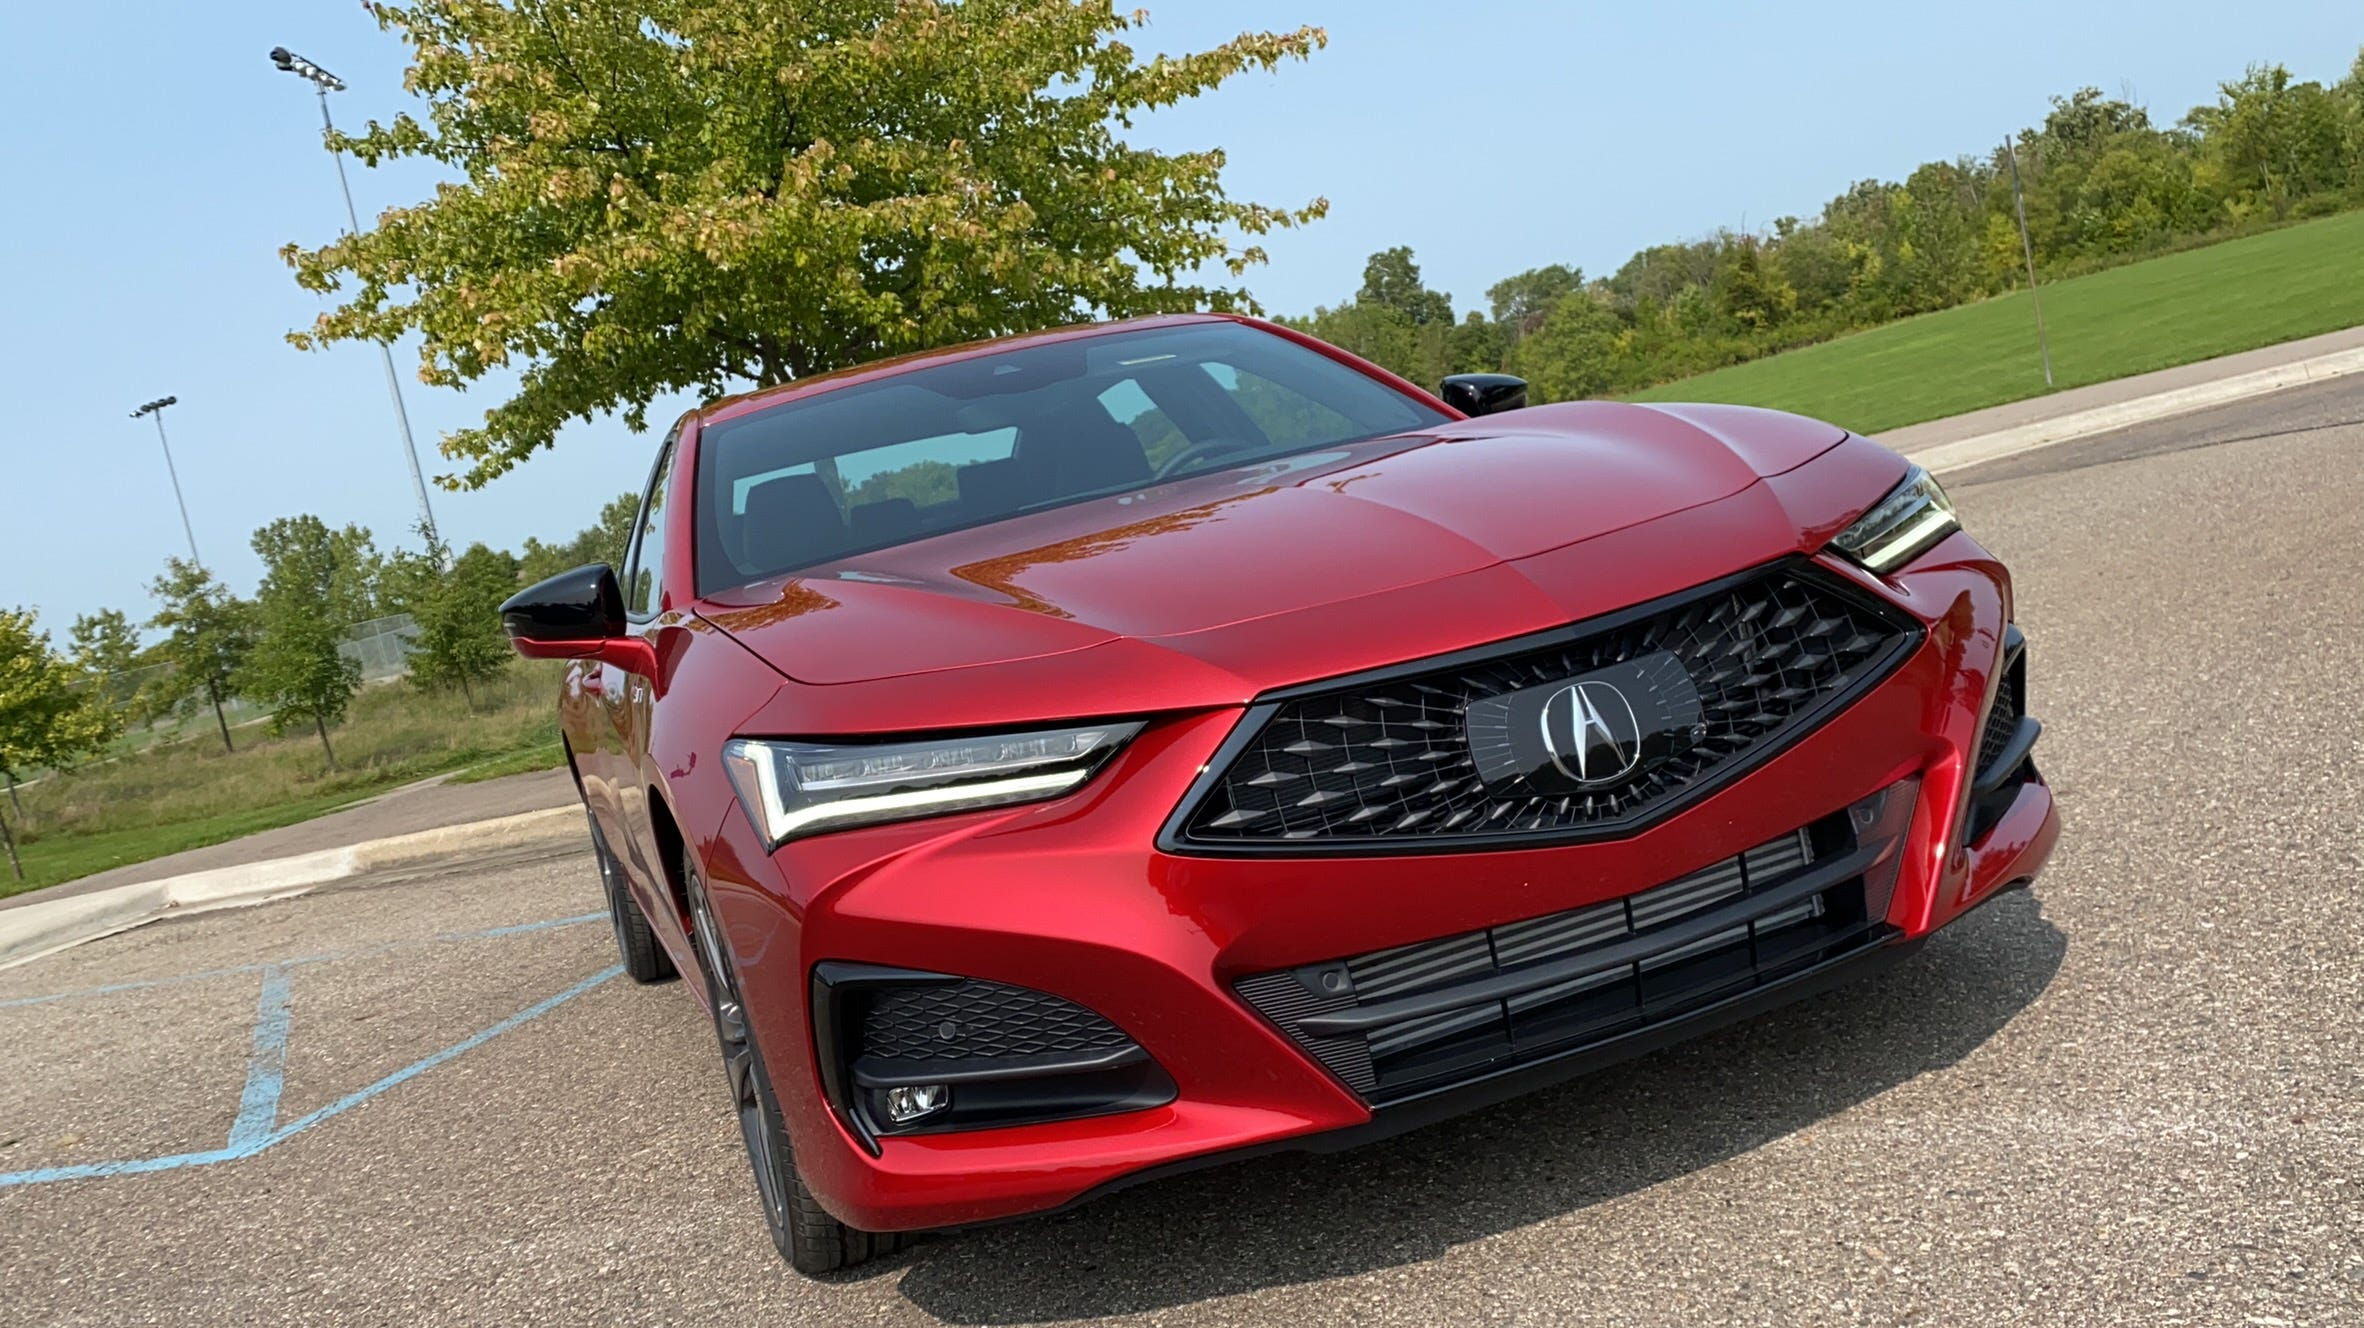 2021 Acura Tlx S Appeal New Platform Attractive Price